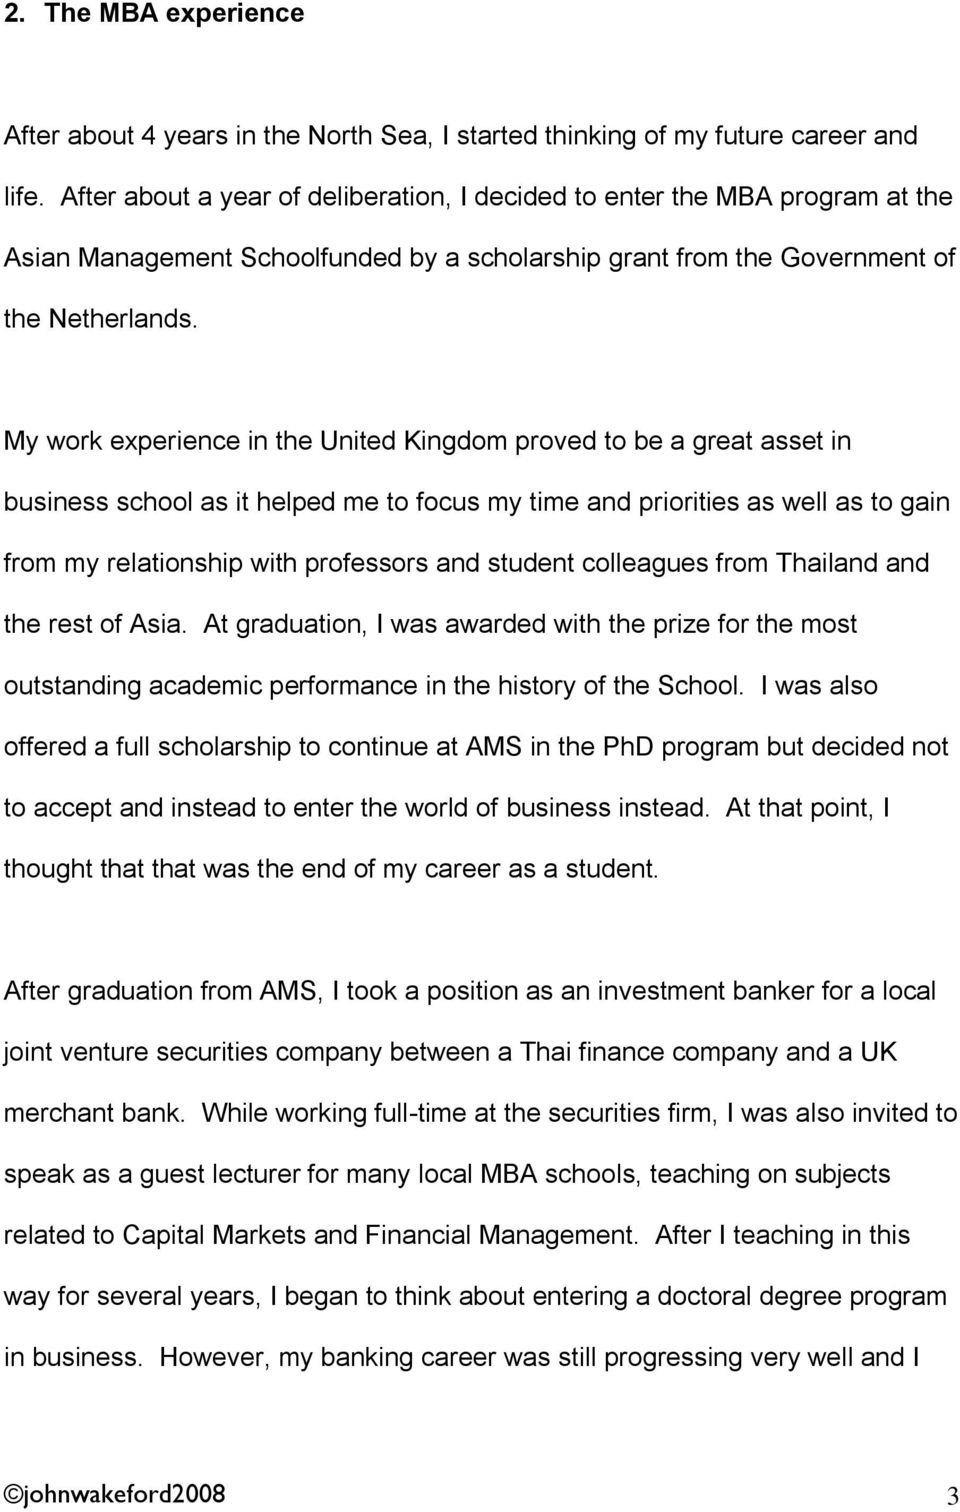 My work experience in the United Kingdom proved to be a great asset in business school as it helped me to focus my time and priorities as well as to gain from my relationship with professors and